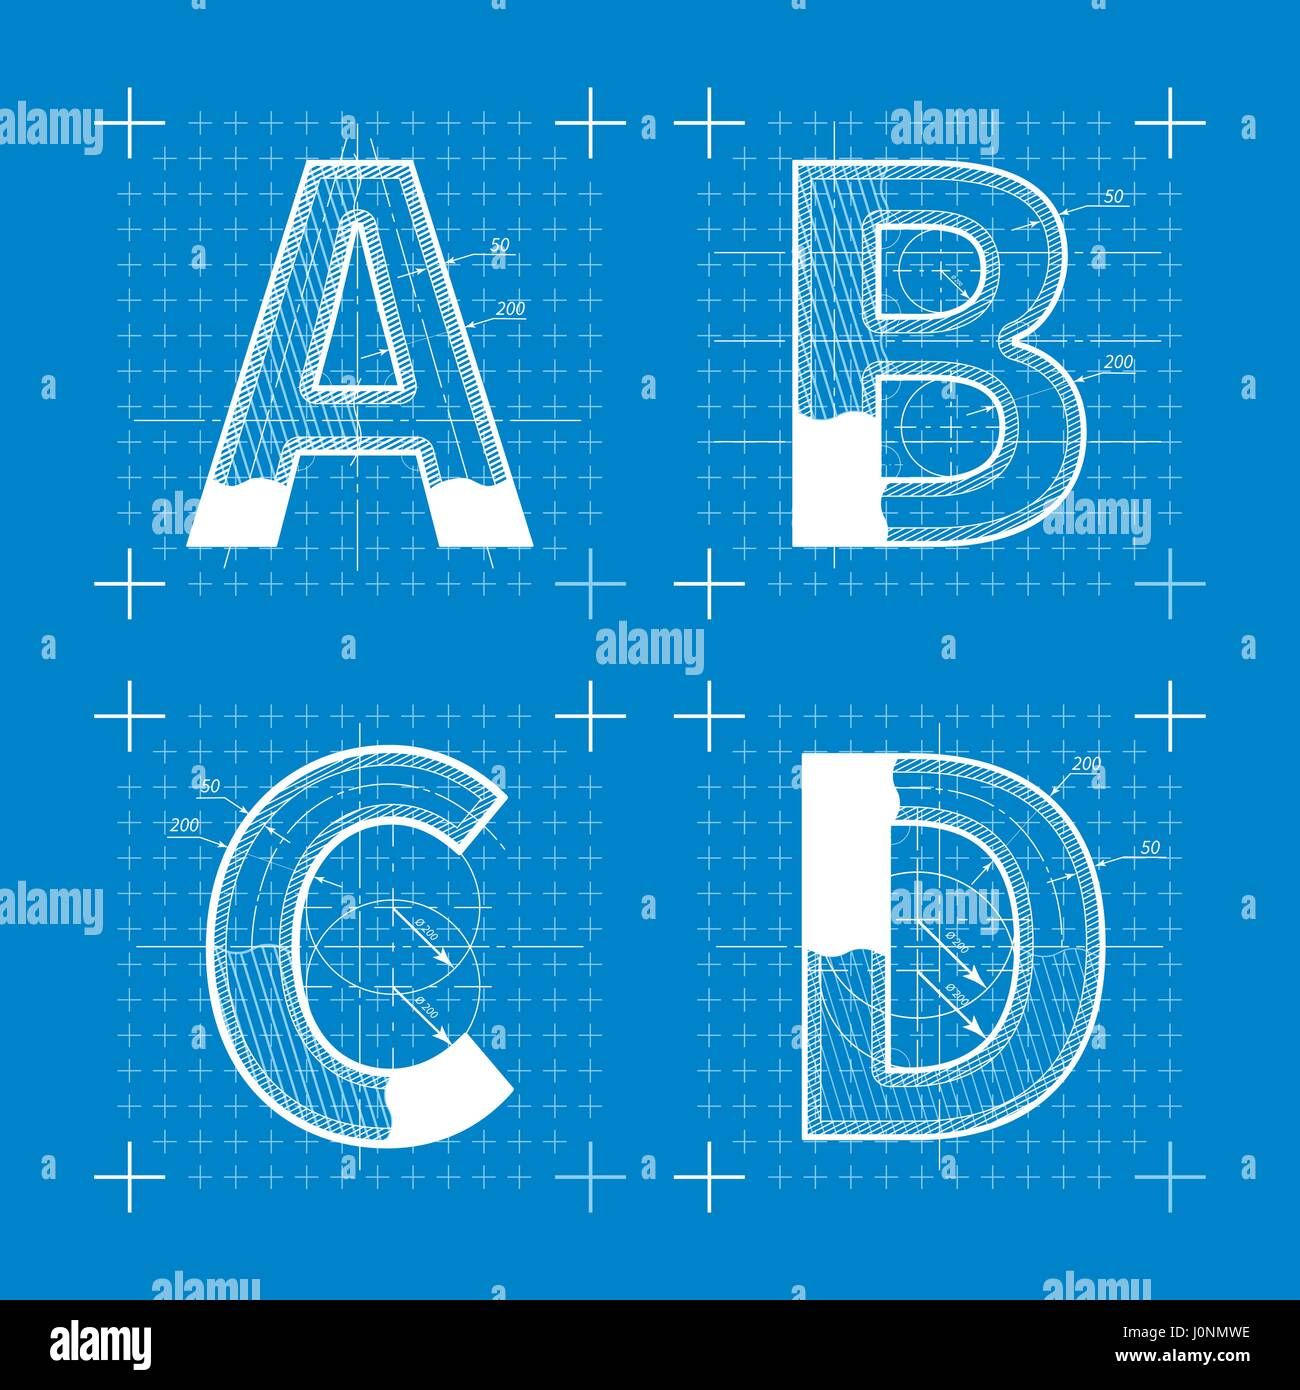 Construction sketches of a b c d letters blueprint style font stock construction sketches of a b c d letters blueprint style font malvernweather Image collections